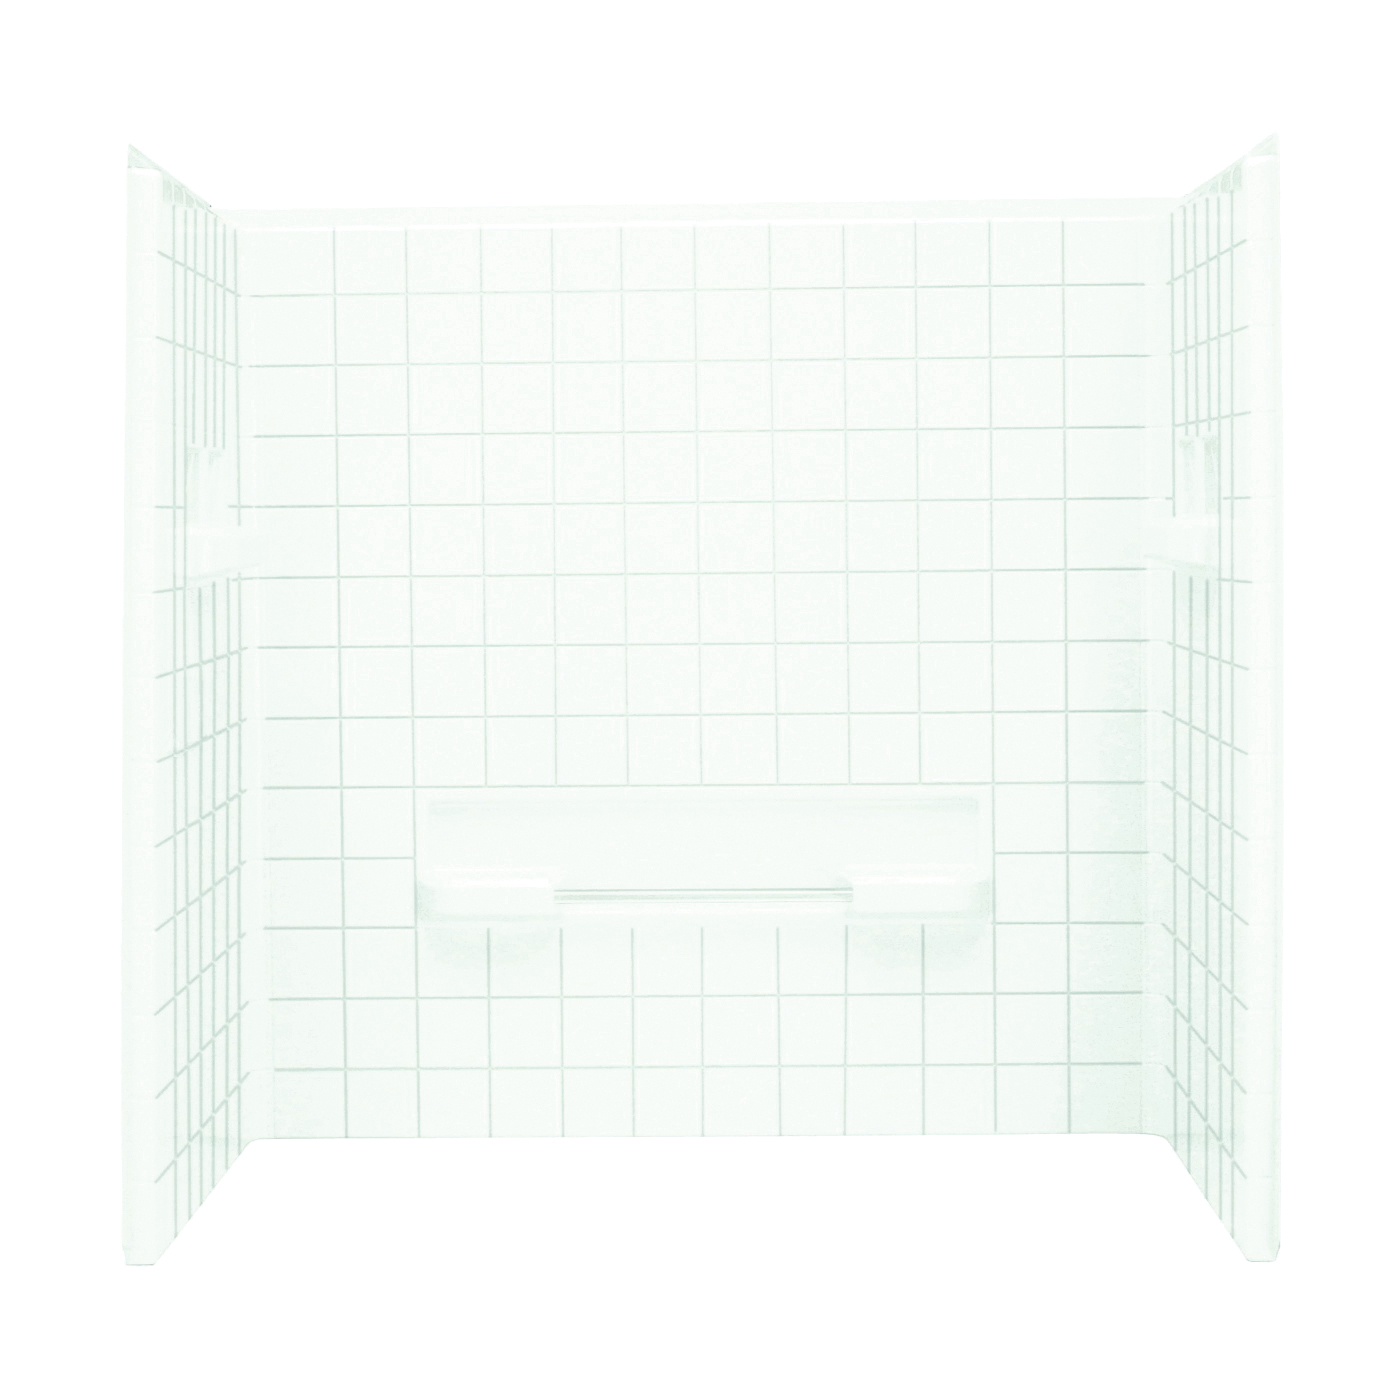 Picture of Sterling Advantage 62044100-0 Shower Wall Set, 35-1/4 in W, Vikrell, White, Swirl Gloss